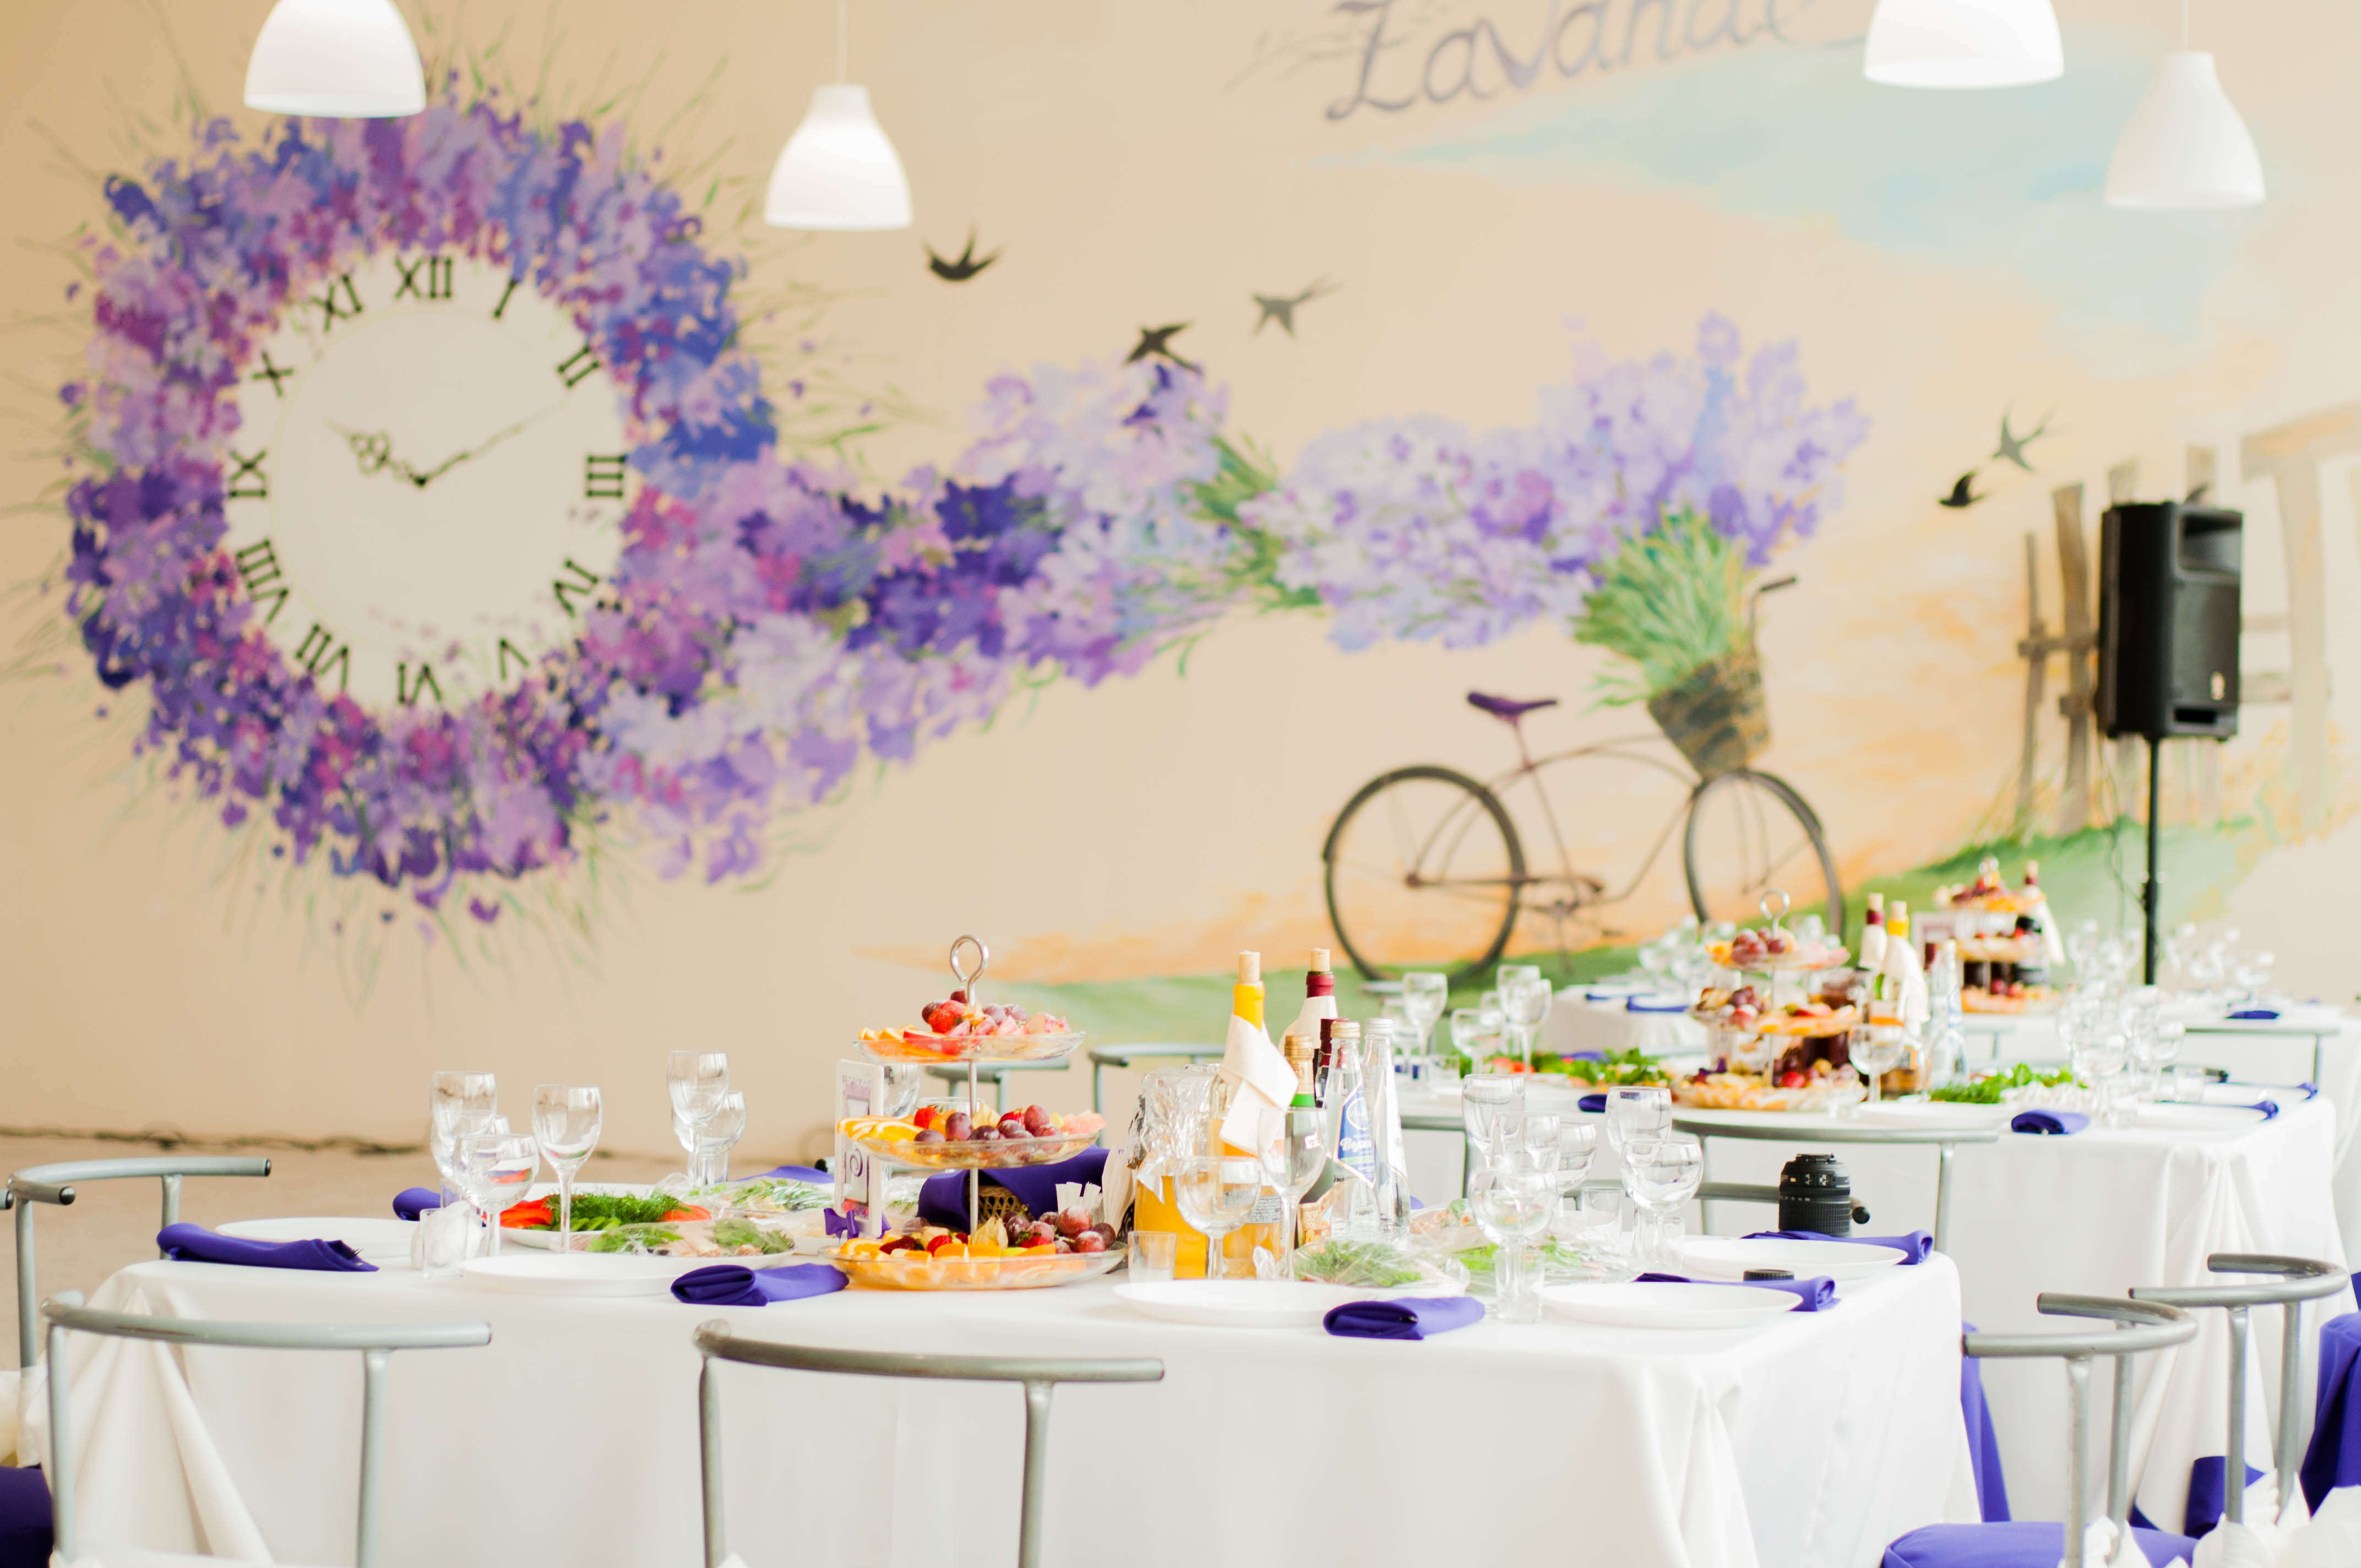 lavendery cafe 26 pastry chef job in bahrain jobs available on neuvoo bahrain a new cafe in need of a pastry chef the lavendery (café & restaurant.